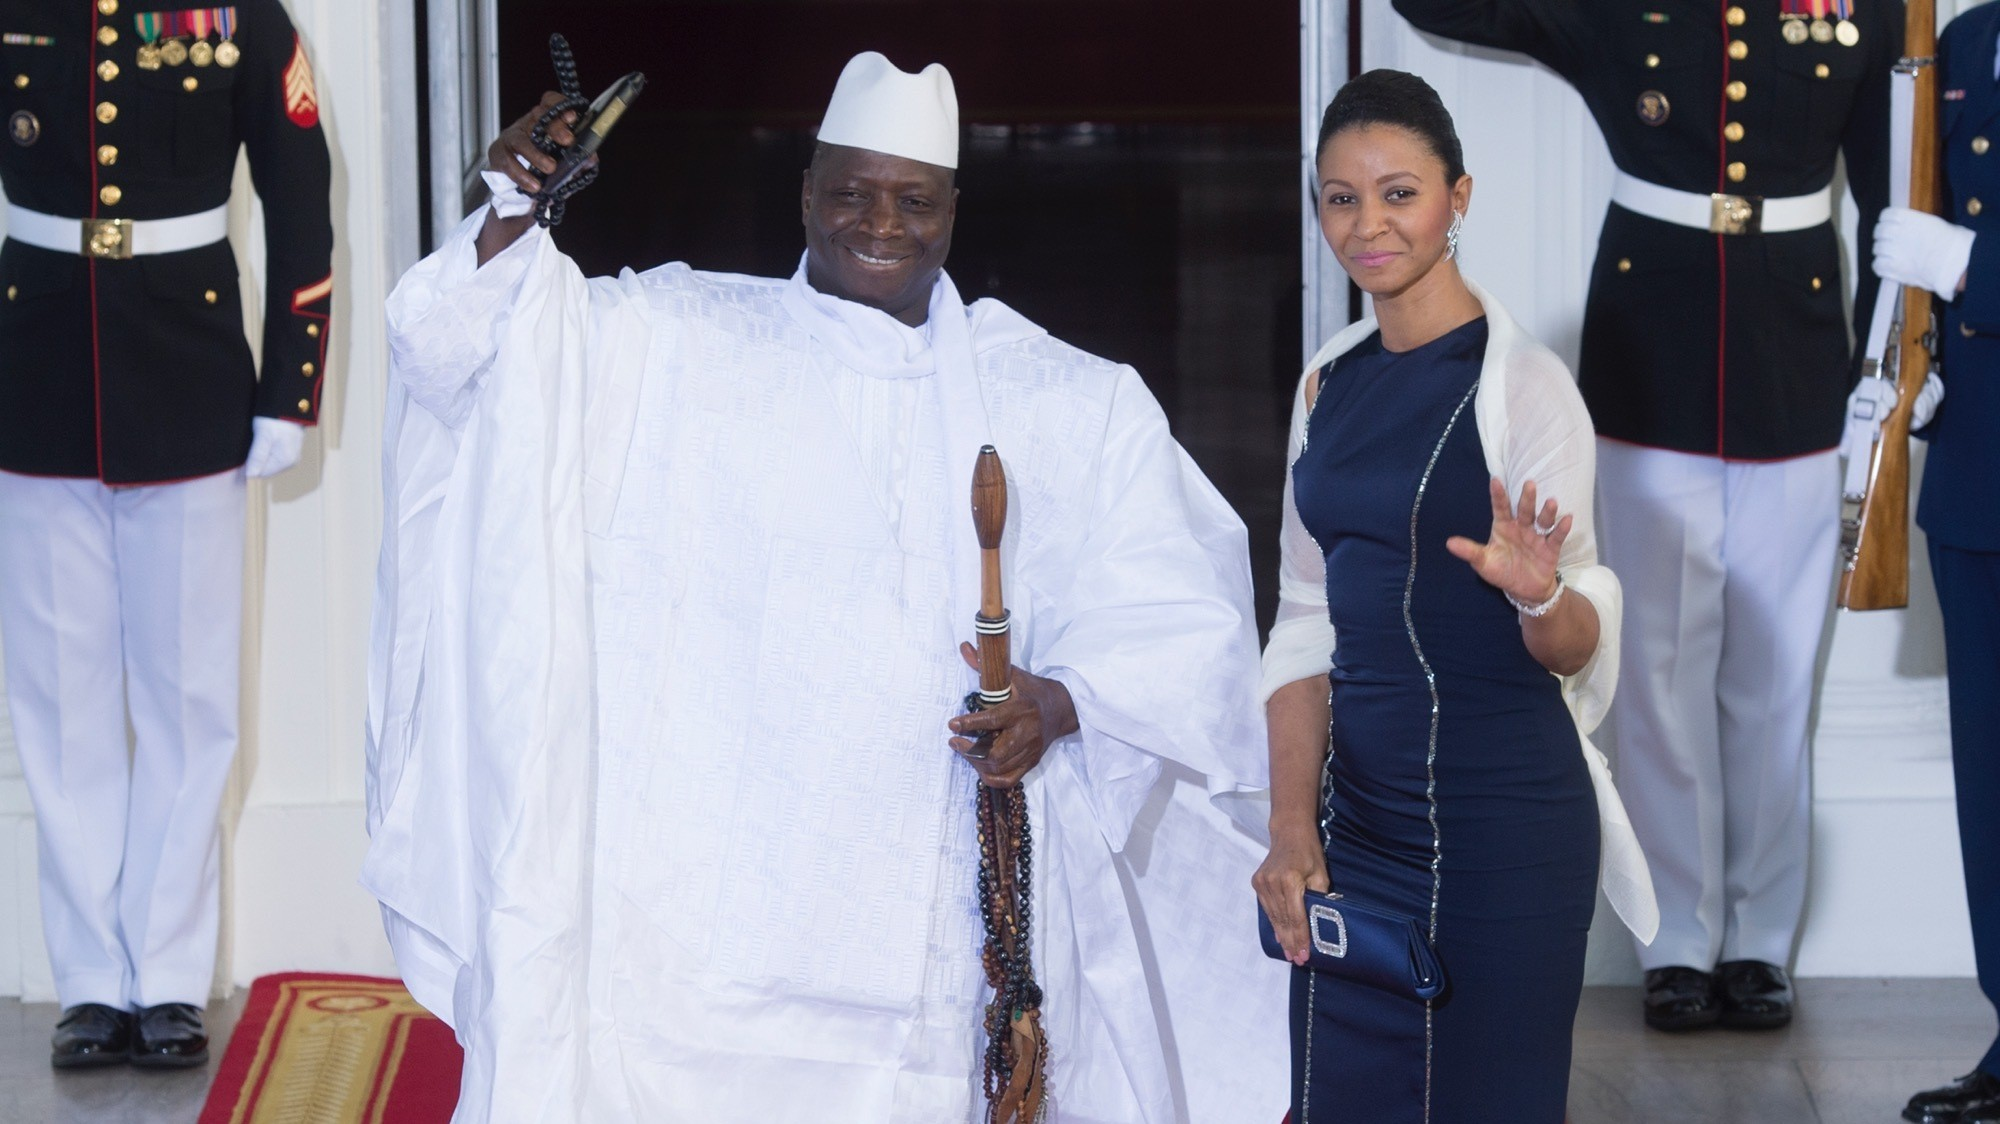 Americans Accused of Trying to Overthrow Gambia's President Sentenced in Minnesota Court